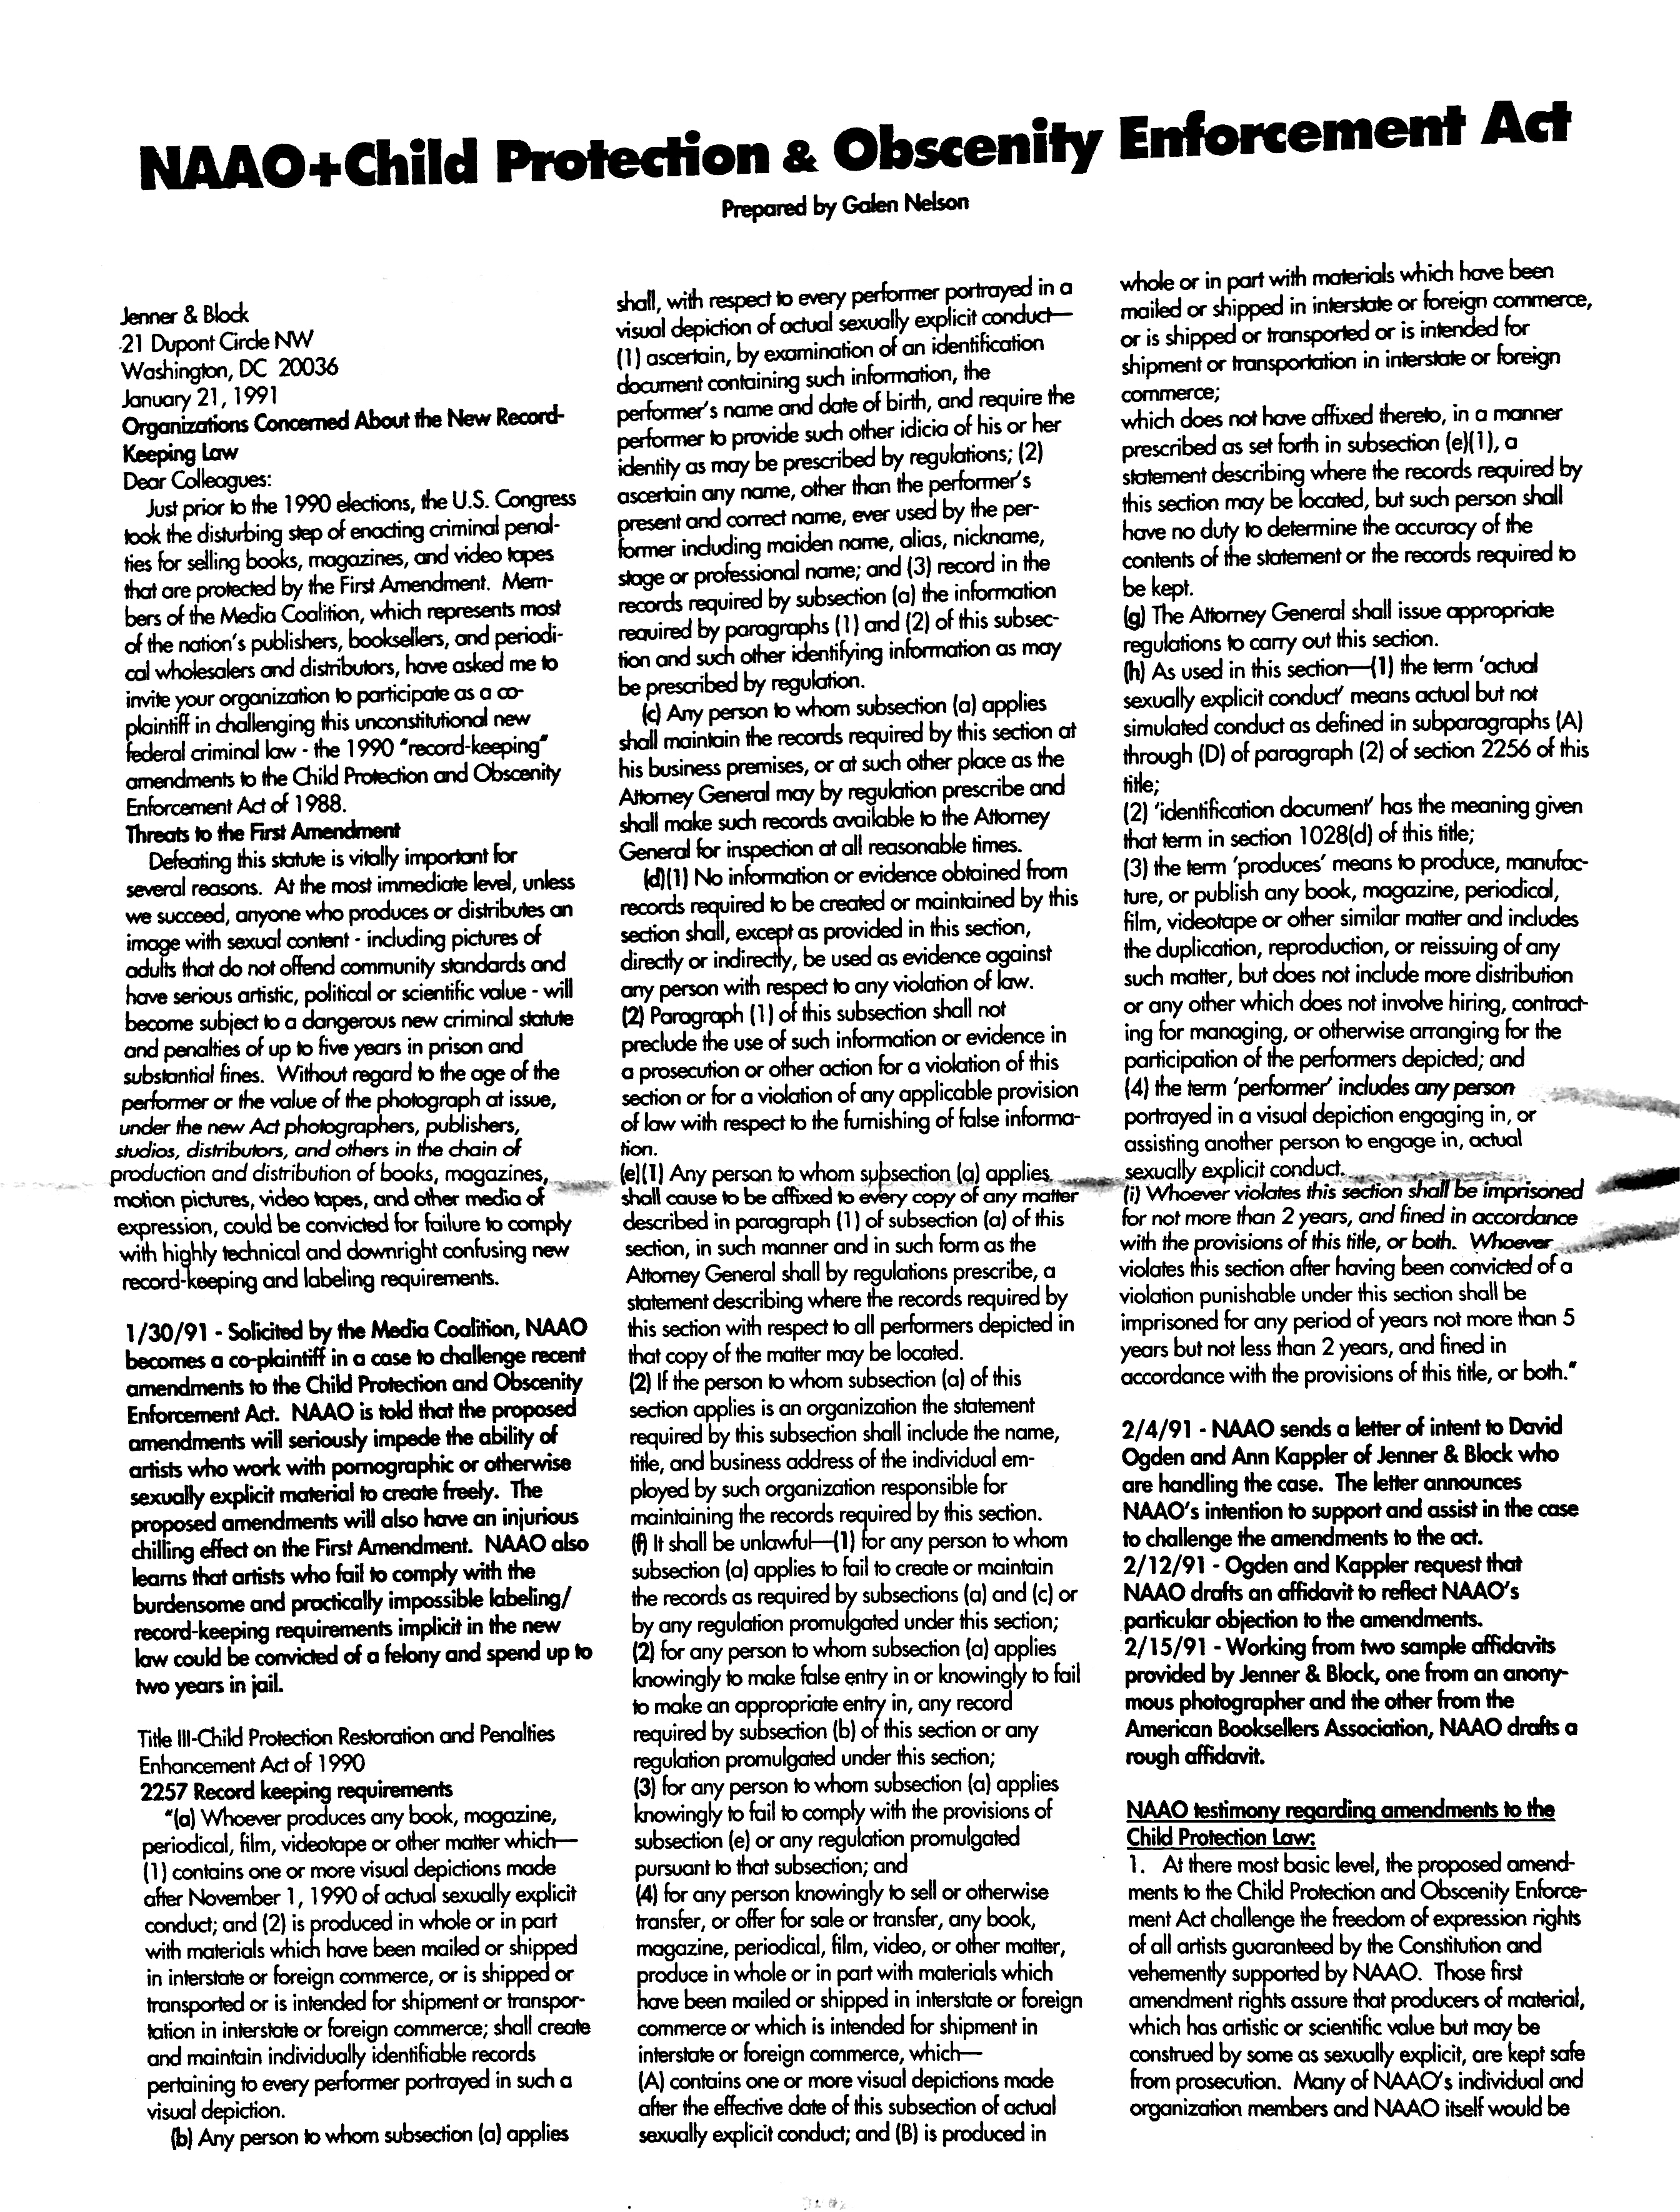 March 1991 - NAAO Bulletin Page 8.jpg